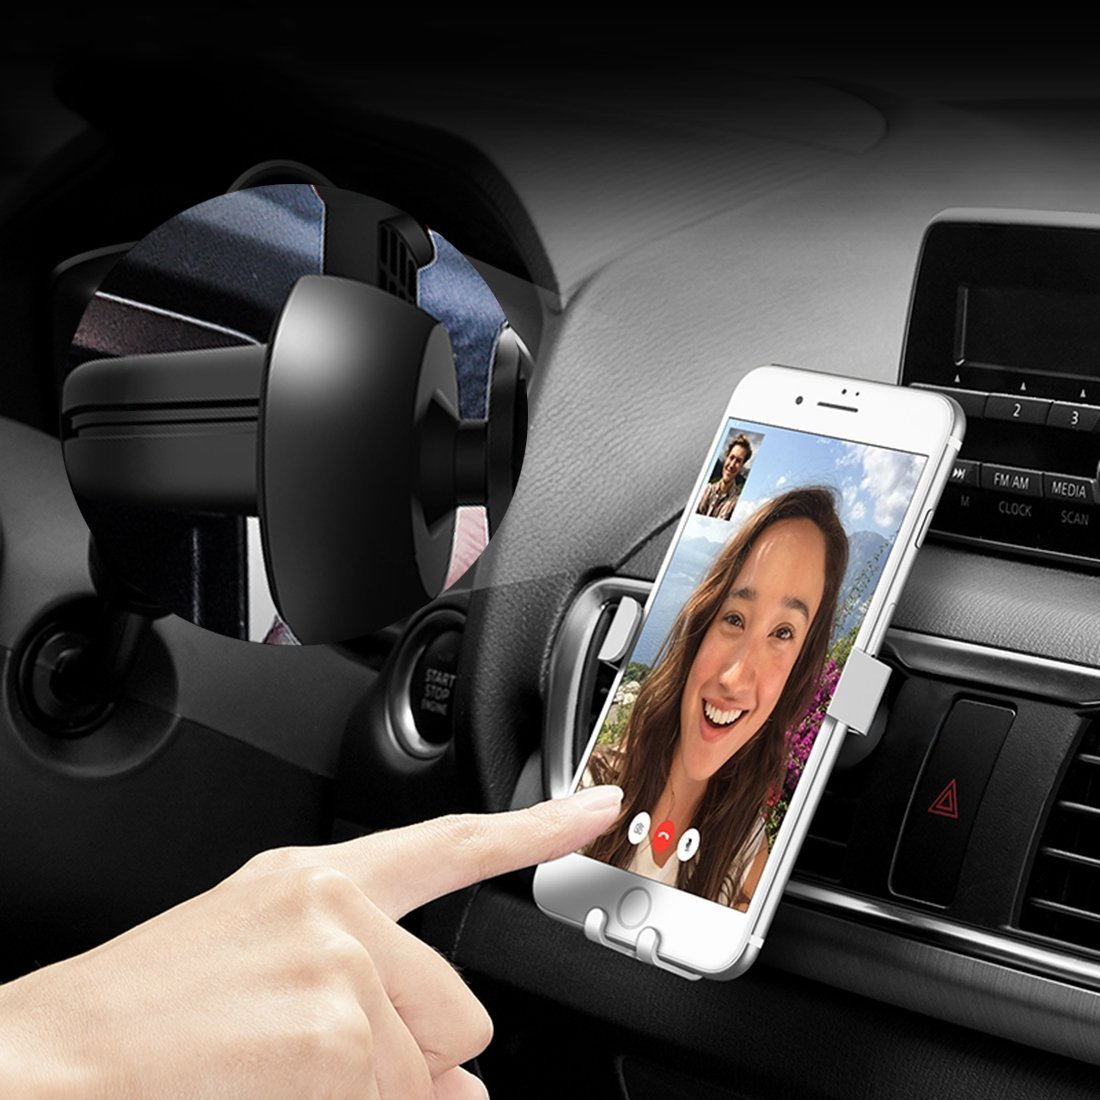 Car Phone Mount, Gravity Air Vent Car Mount Universal Rotate Cellphone Holder Mount Bracket Auto Lock Design, Easy Operation Cradle Smart No-Touch Design, for iPhone X/8/7 Plus/6s/Samsung Galaxy S8 …